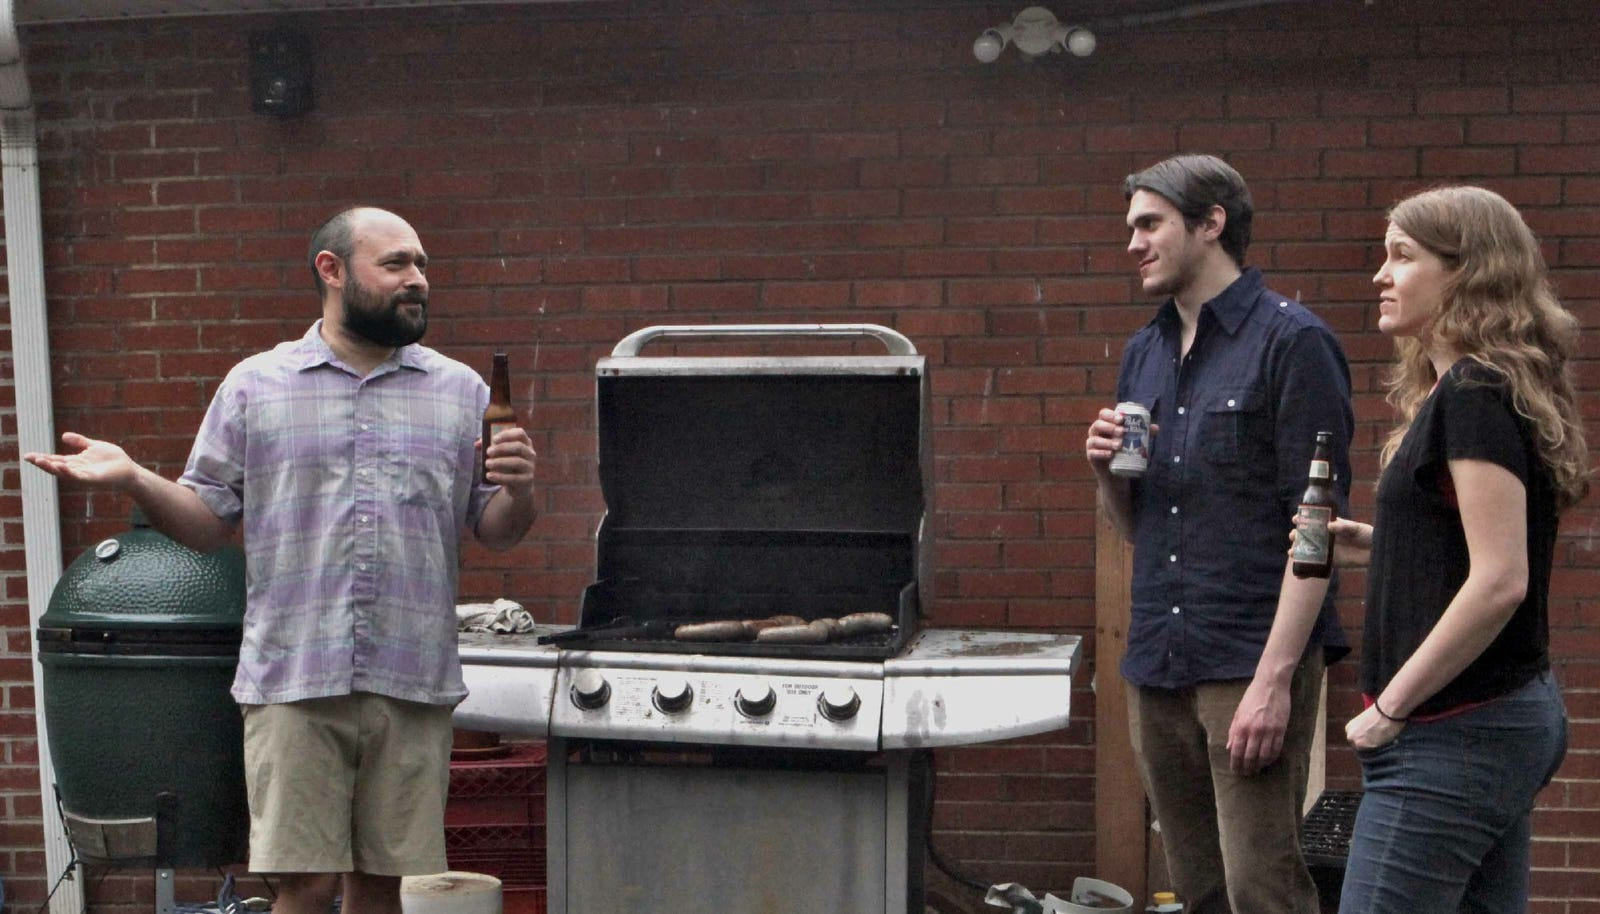 Wise Oracle Proclaims To All At Barbecue That He Felt A Raindrop